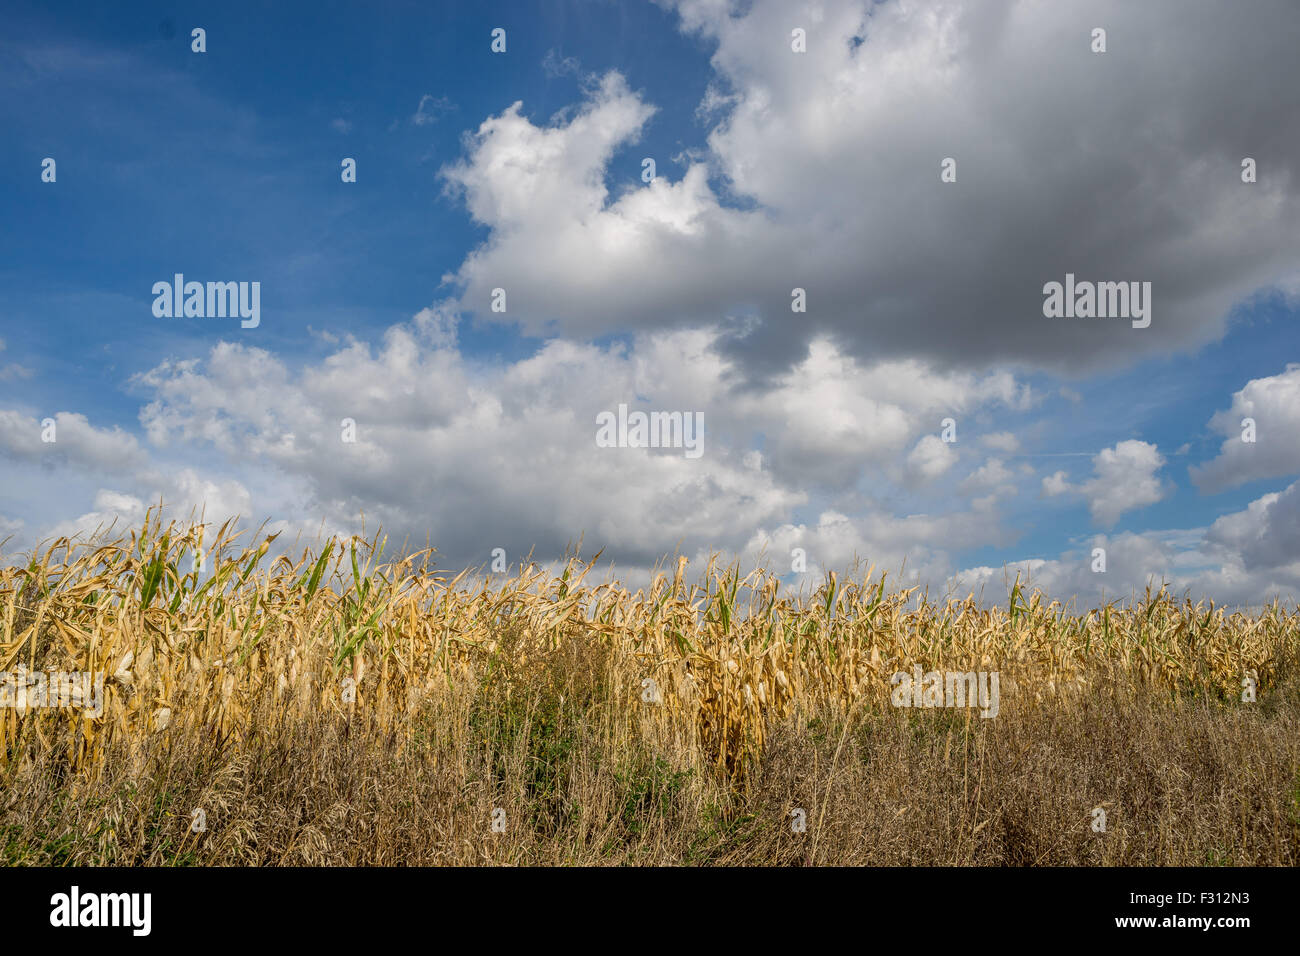 White cumulonimbus clouds in the blue sky over dry corn fields Lower Silesia Poland - Stock Image